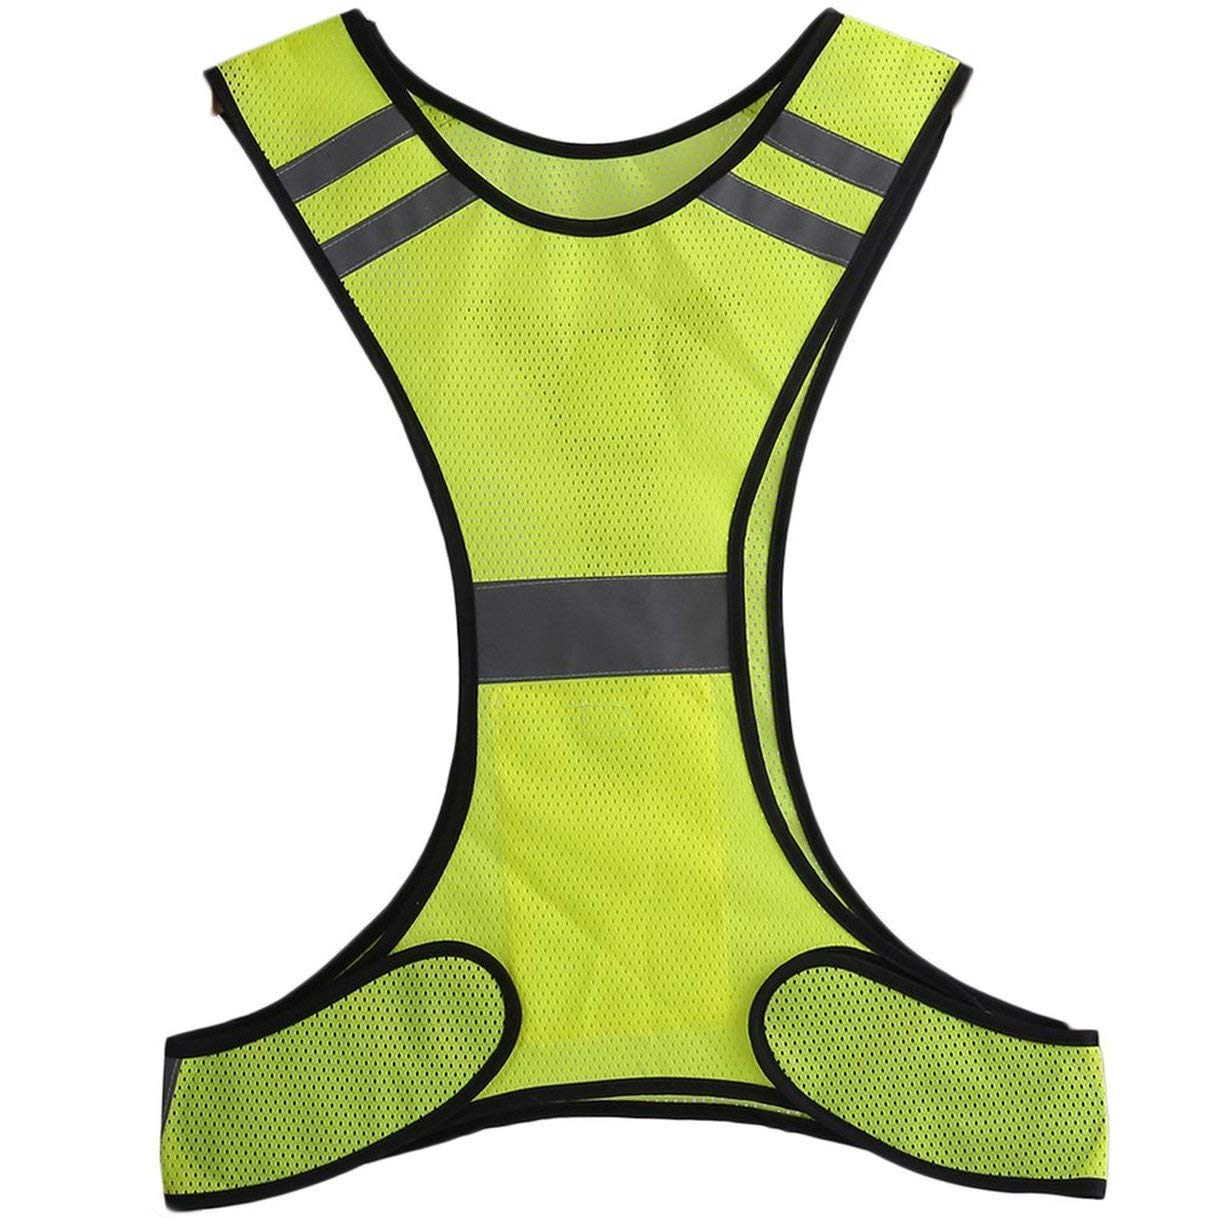 Quality In 2019 Latest Design Reflective Safety Vest Cycling Bike Bicycle Vest Sleeveless Night Running Security Riding Outdoor Protection Excellent